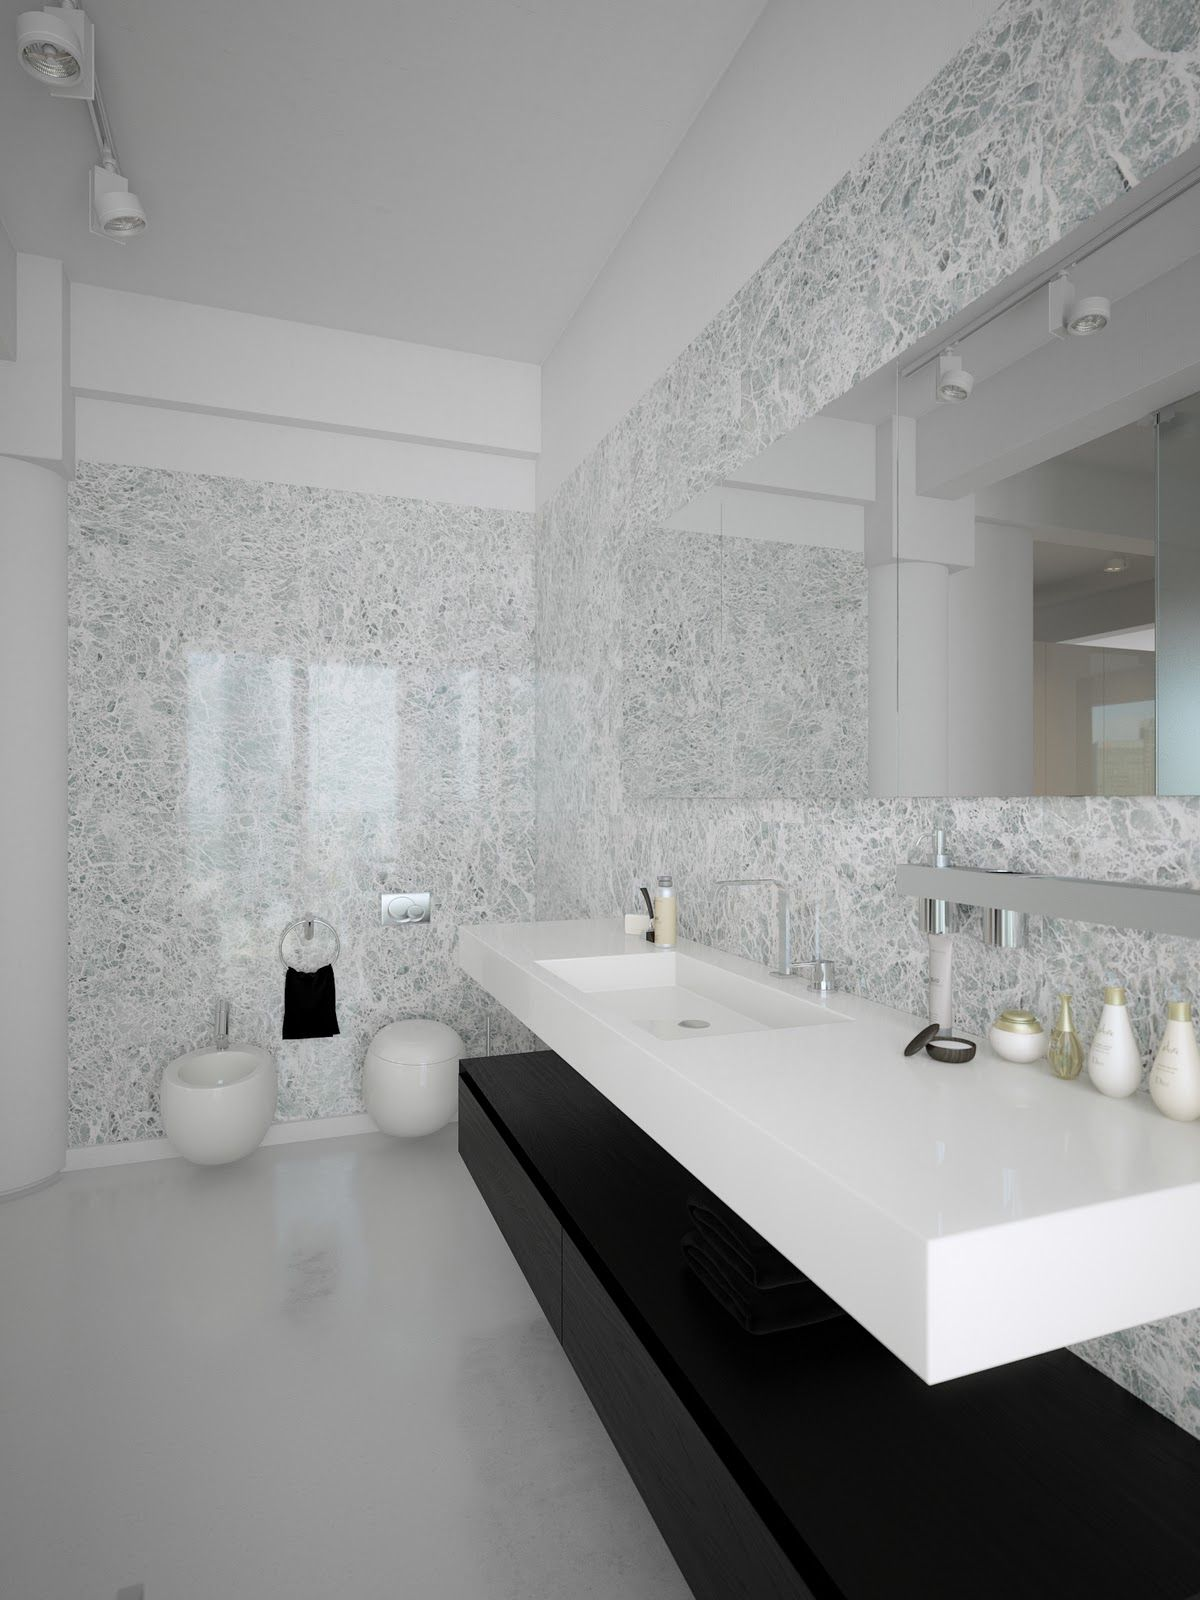 Coolest minimalist modern bathroom design contemporary for Designer bathroom decor